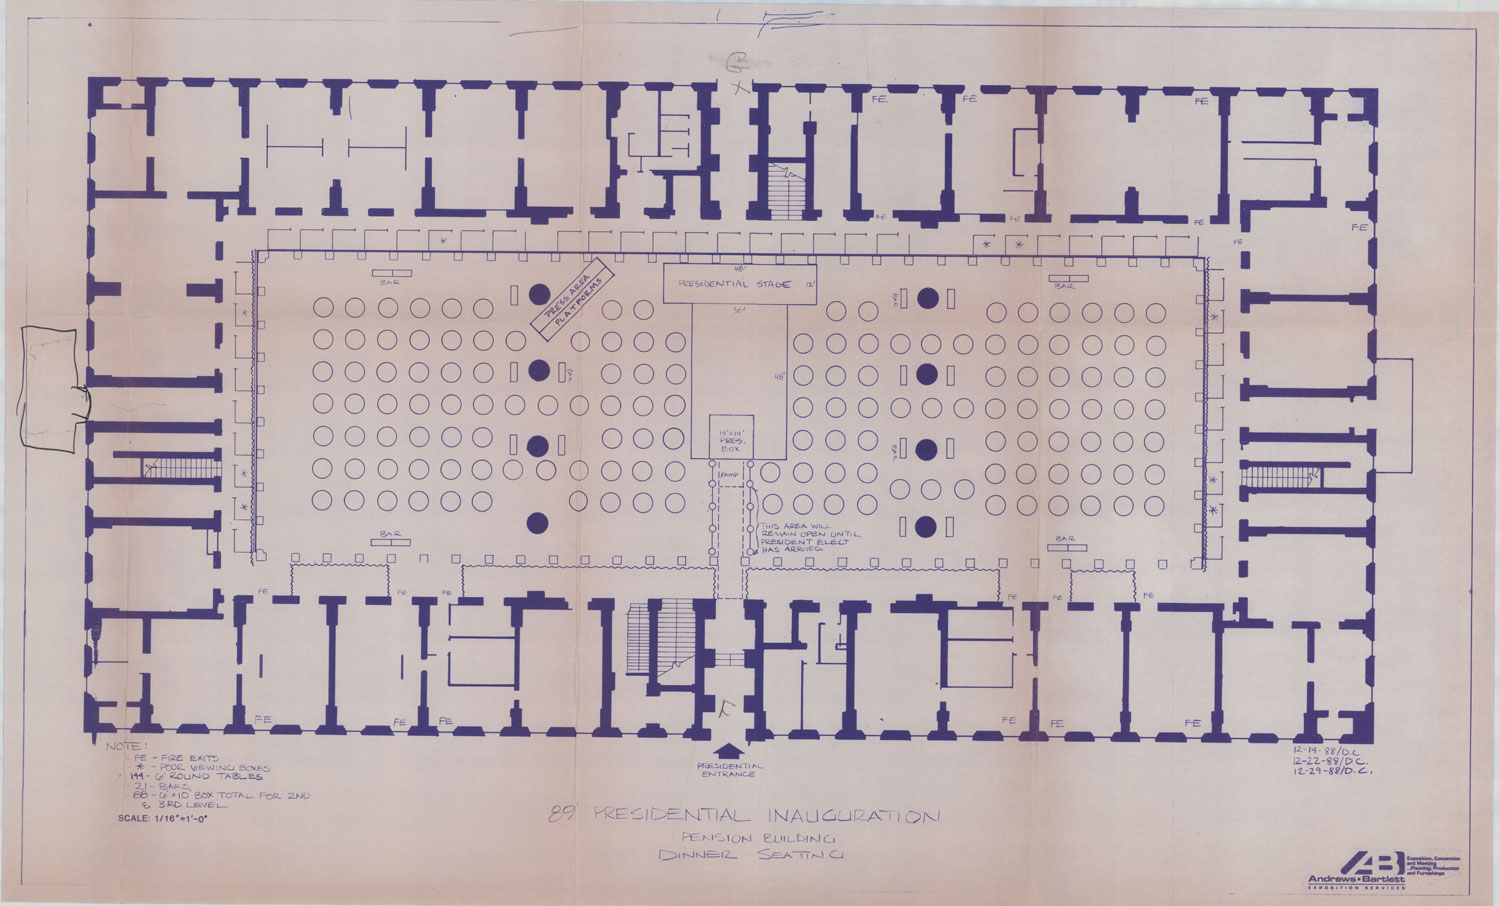 Pension building collection at the national building museum blueprint of presidential inauguration dinner seating and staging plan president george bush 1989 national building museum collection malvernweather Gallery